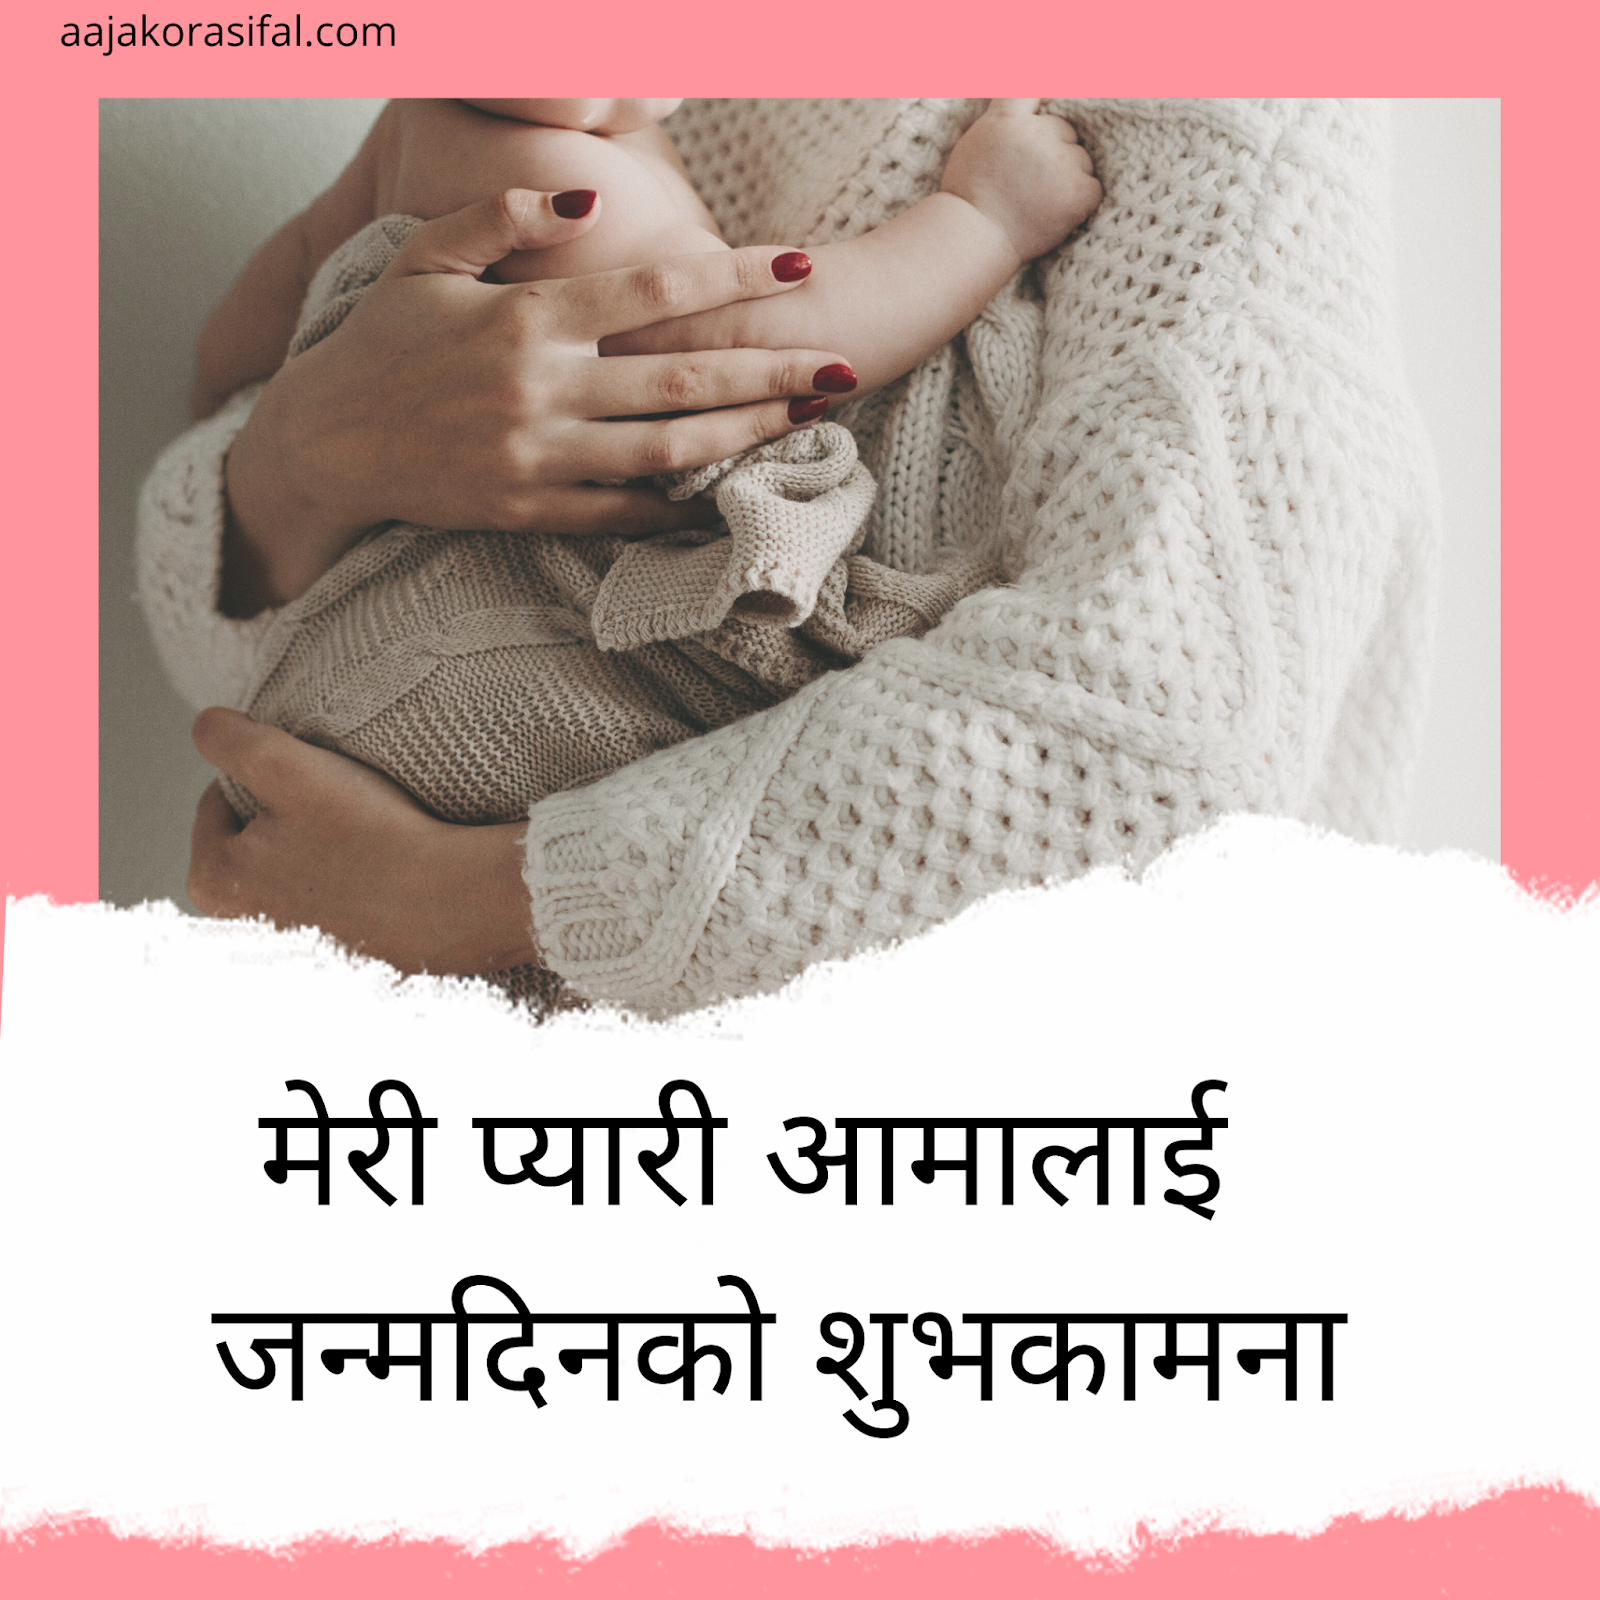 Nepali birthday wishes for mother